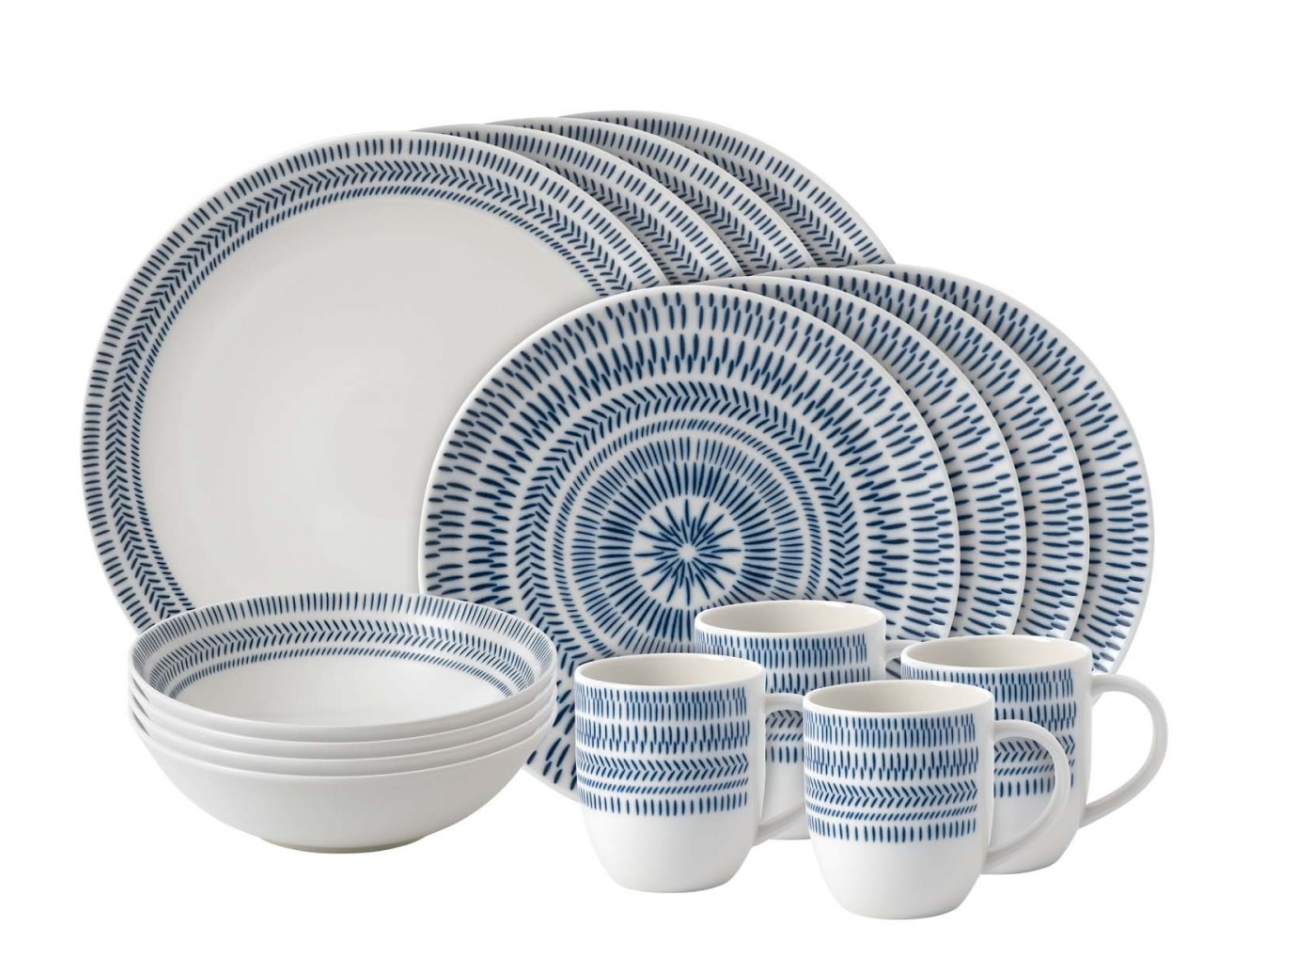 Ellen DeGeneres New Home Collections Furniture Dishes : image from www.refinery29.com size 1299 x 974 png 1237kB